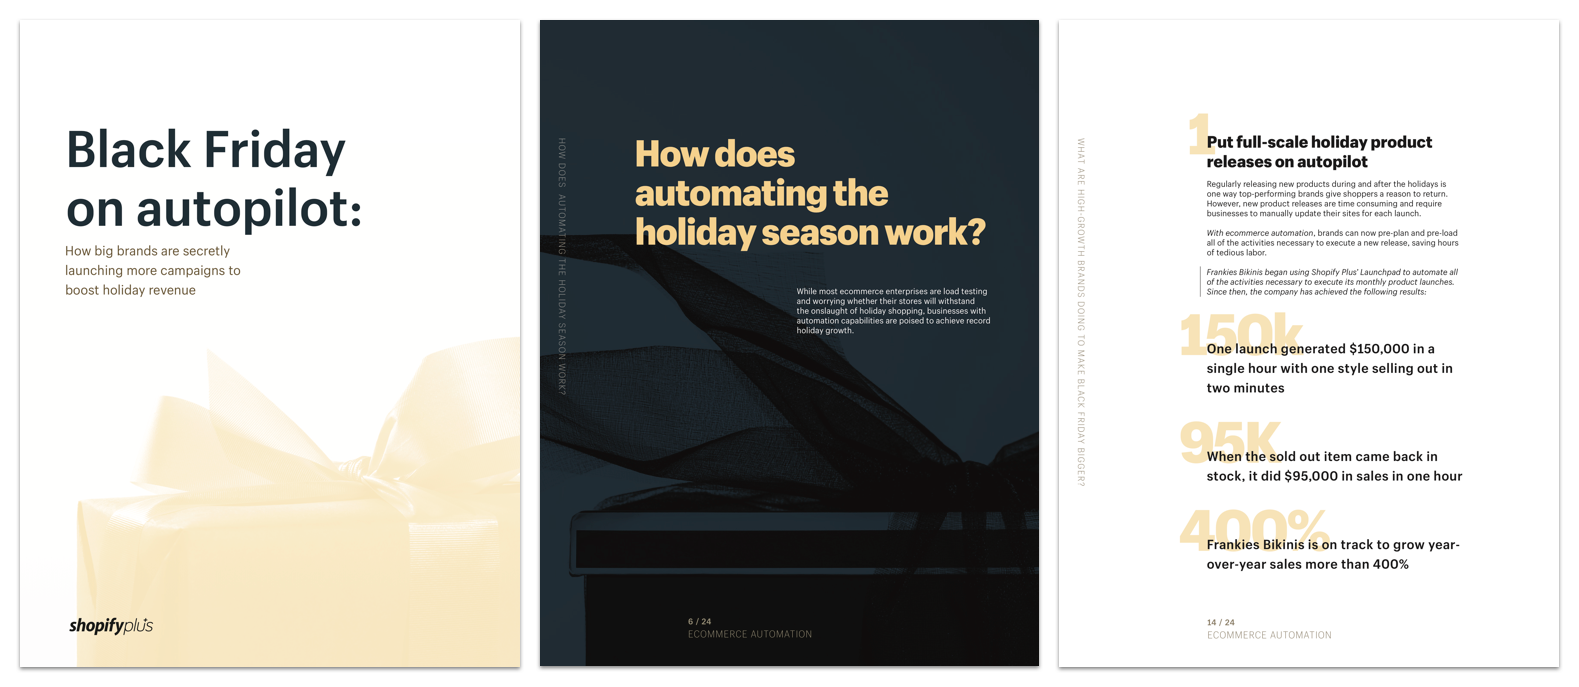 Sample pages on using automation as a holiday ecommerce strategy